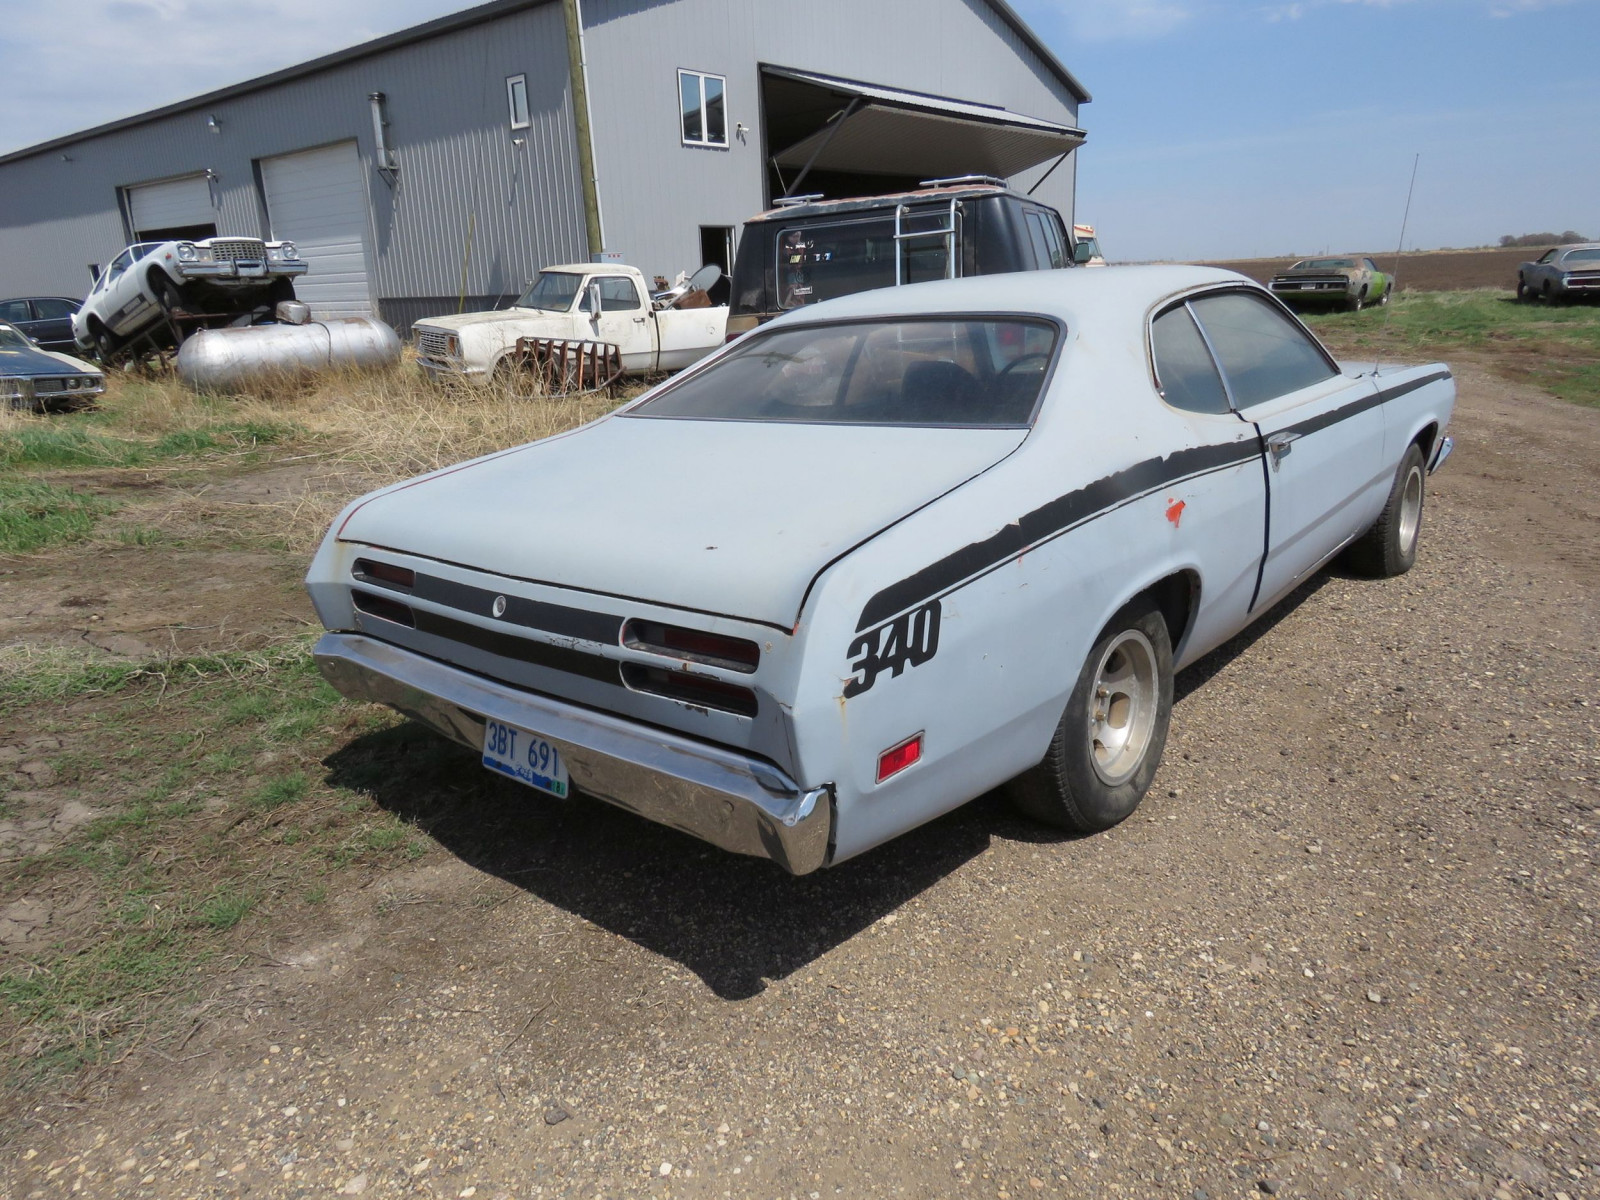 1971 Plymouth Duster 2dr HT - Image 4